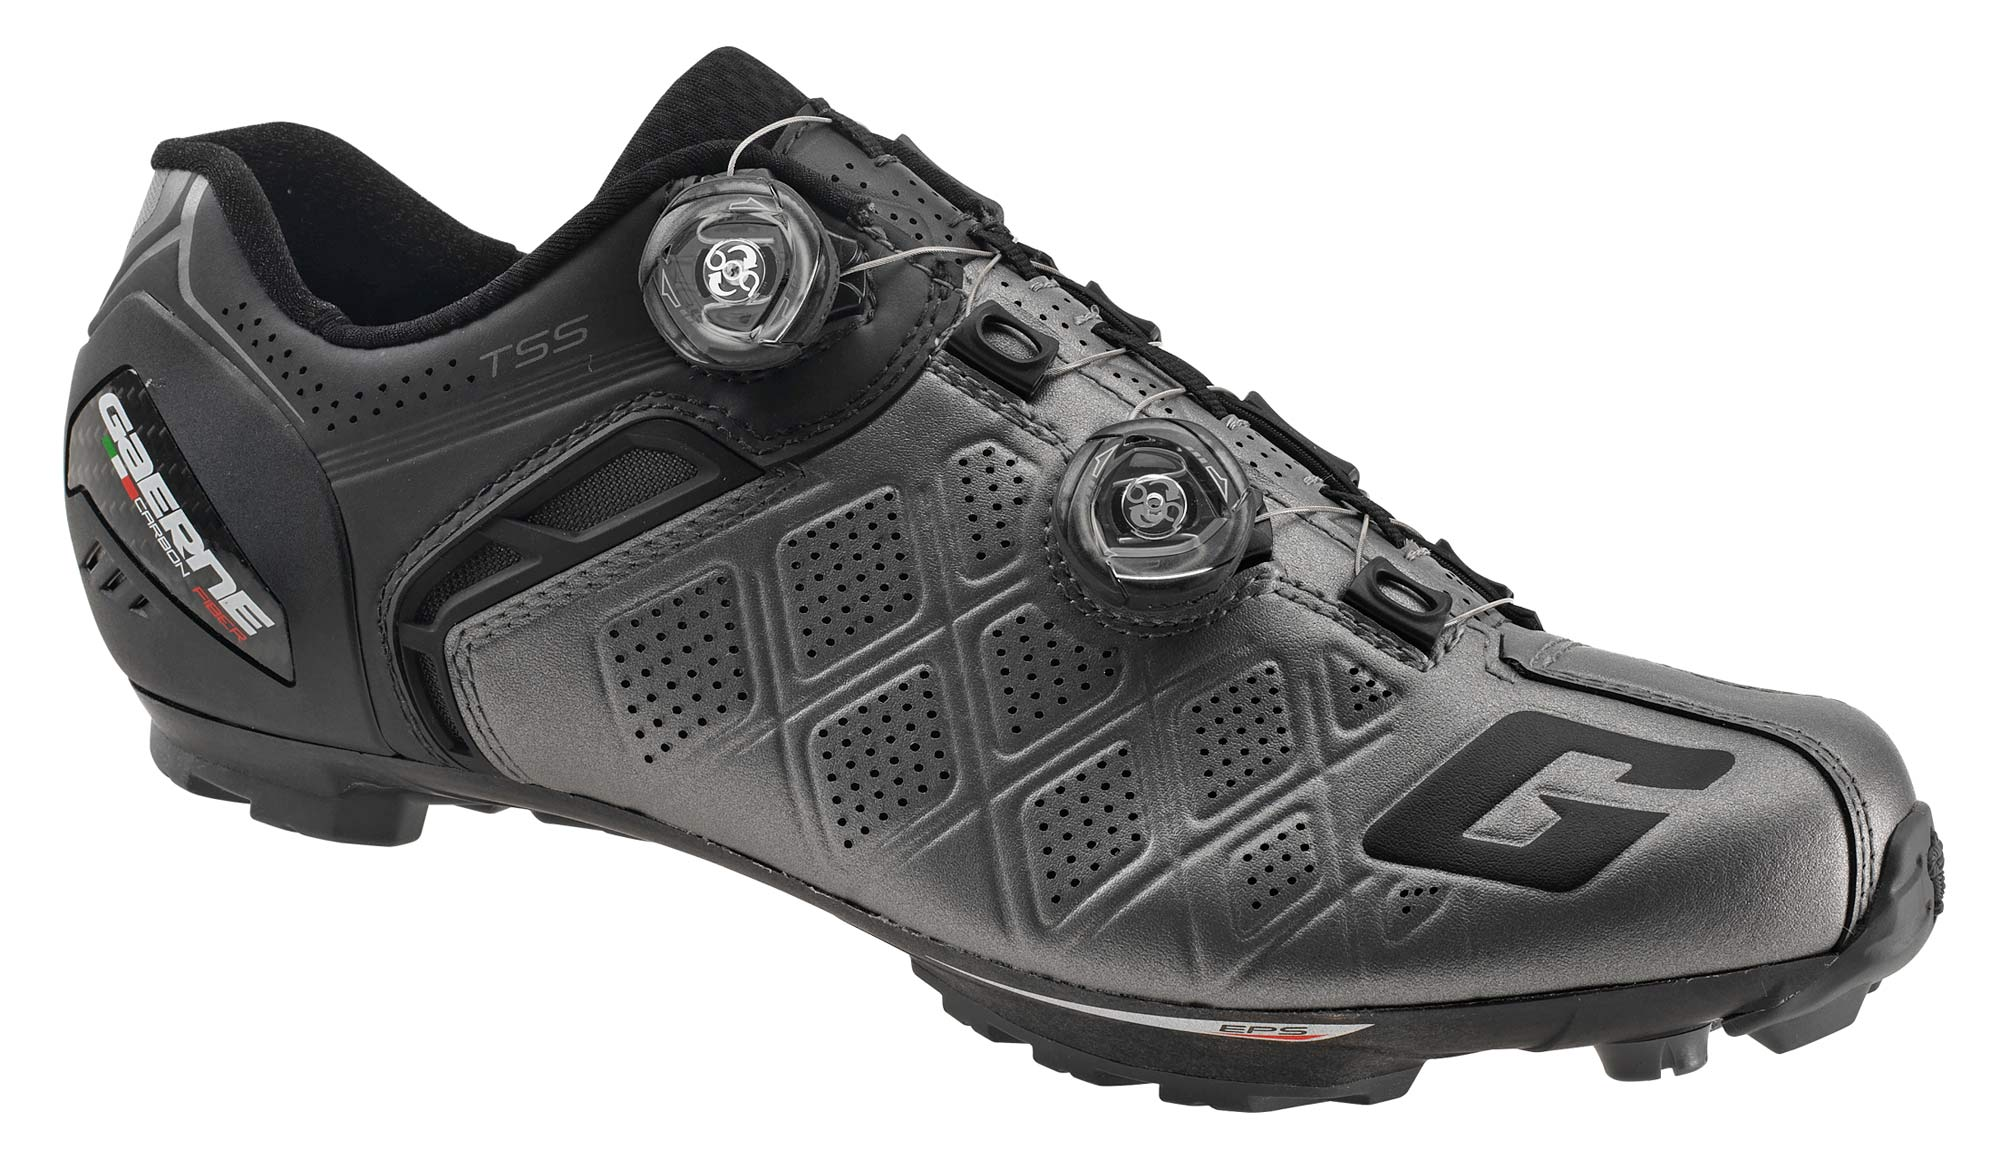 Gaerne Resoles Carbon G Sincro Mountain Bike Shoes With New